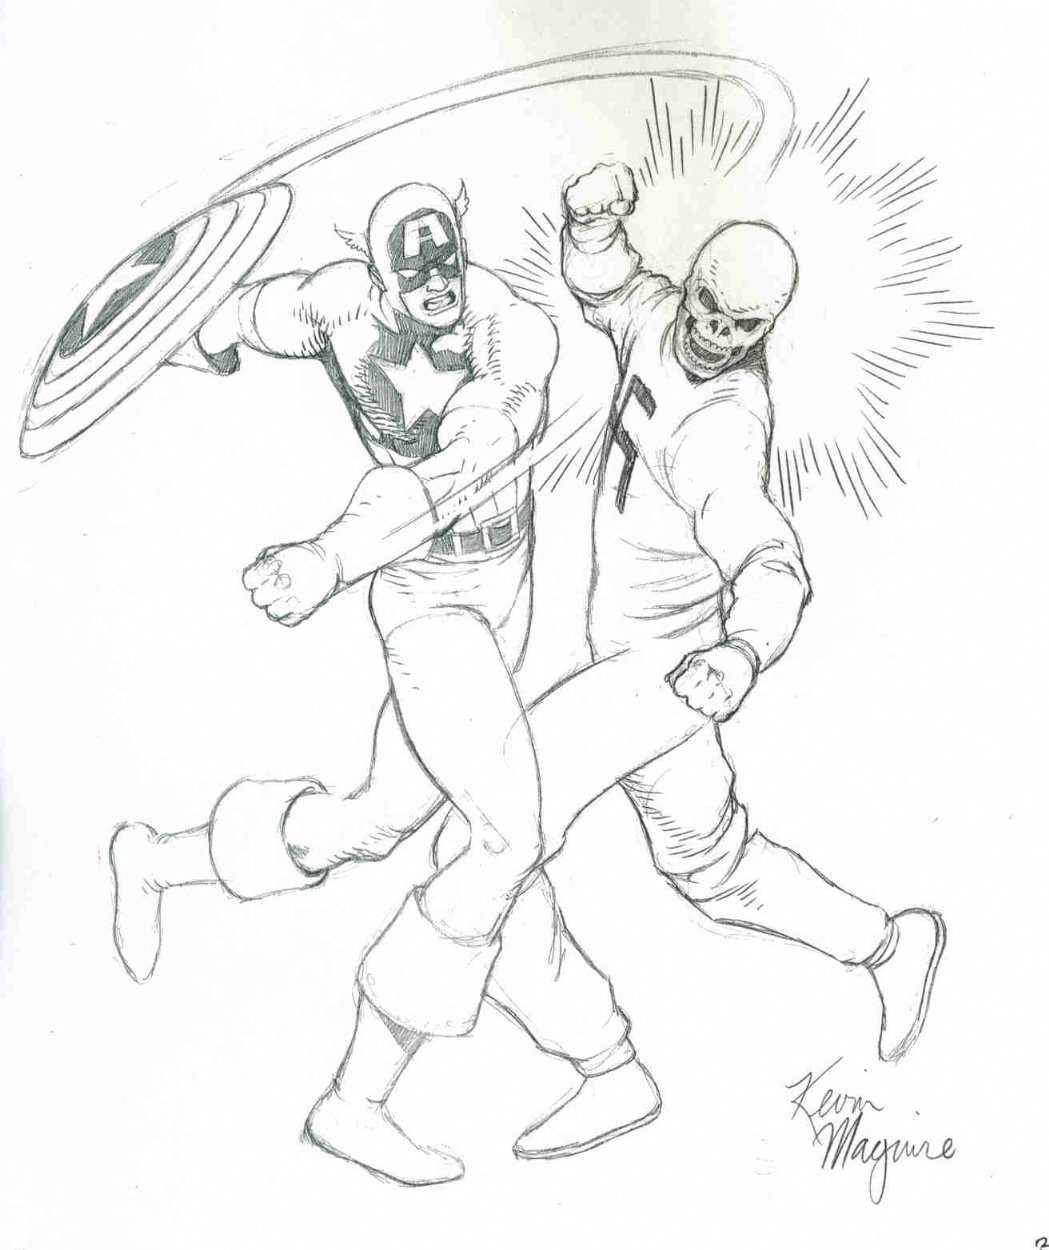 Captain America vs. the Red Skull : Kevin Maguire, in Michael Rankins's  Pencil Originals for Inking Commissions Comic Art Gallery Room